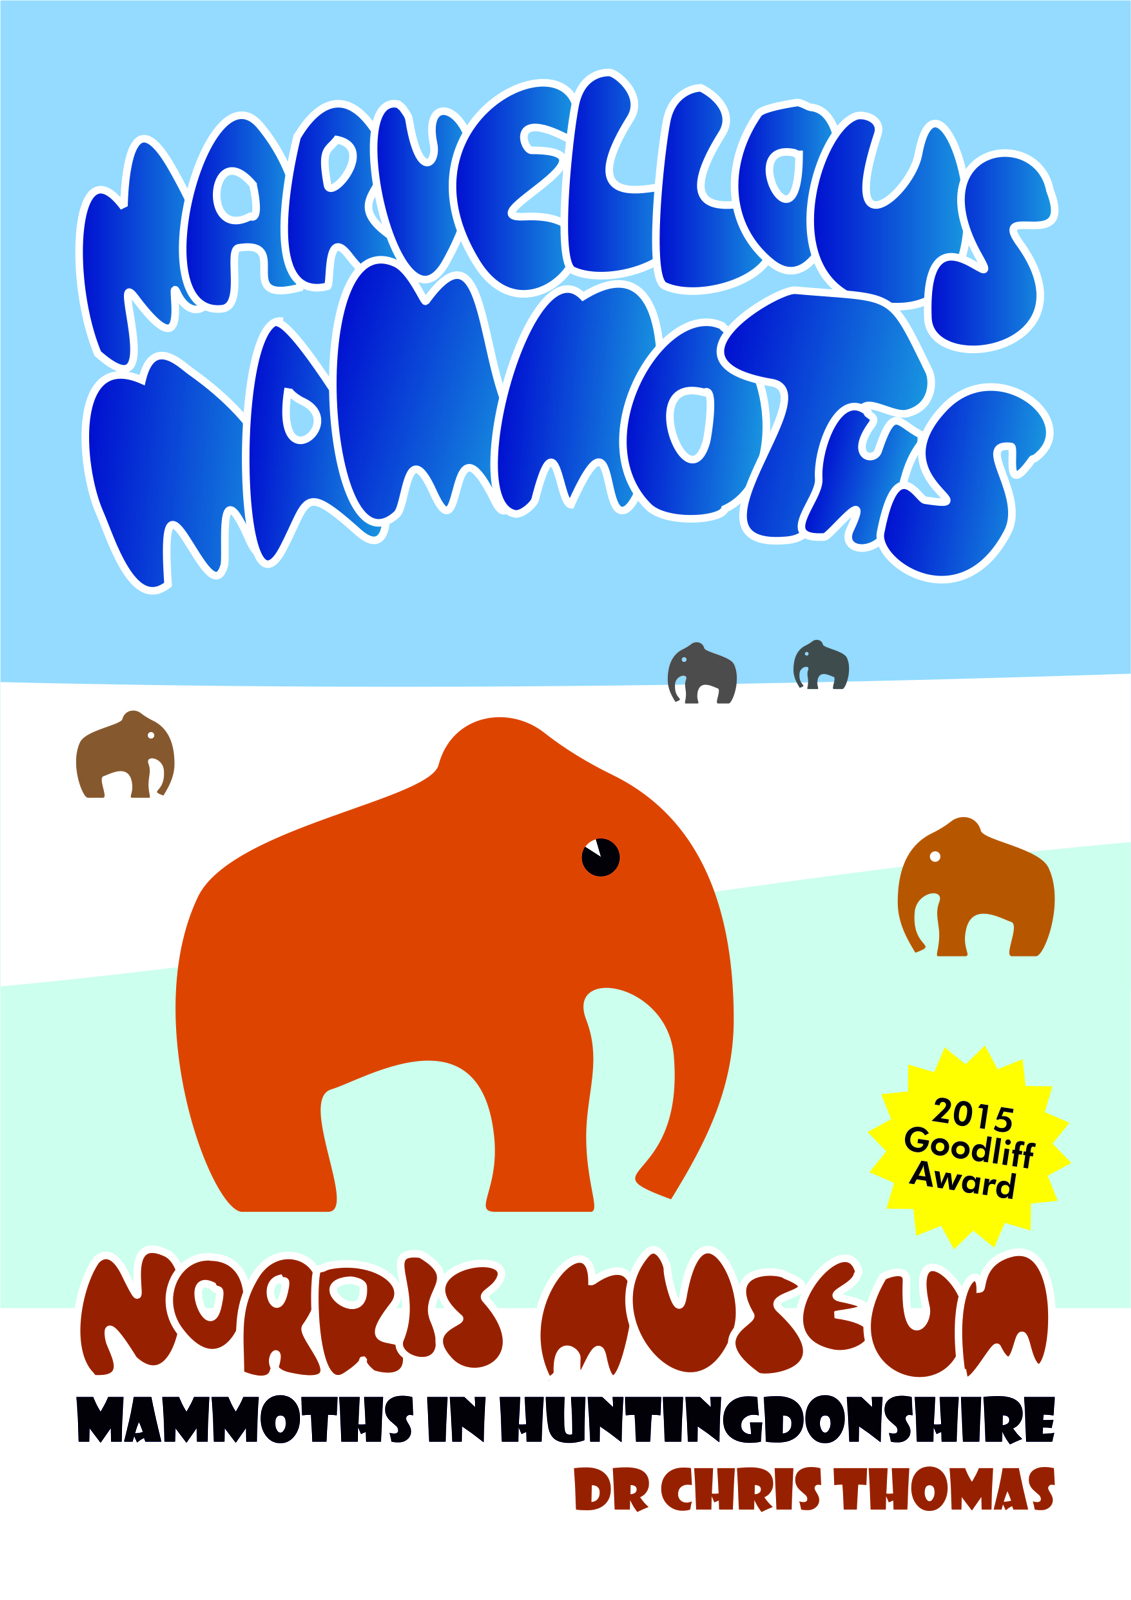 Marvellous Mammoths book cover